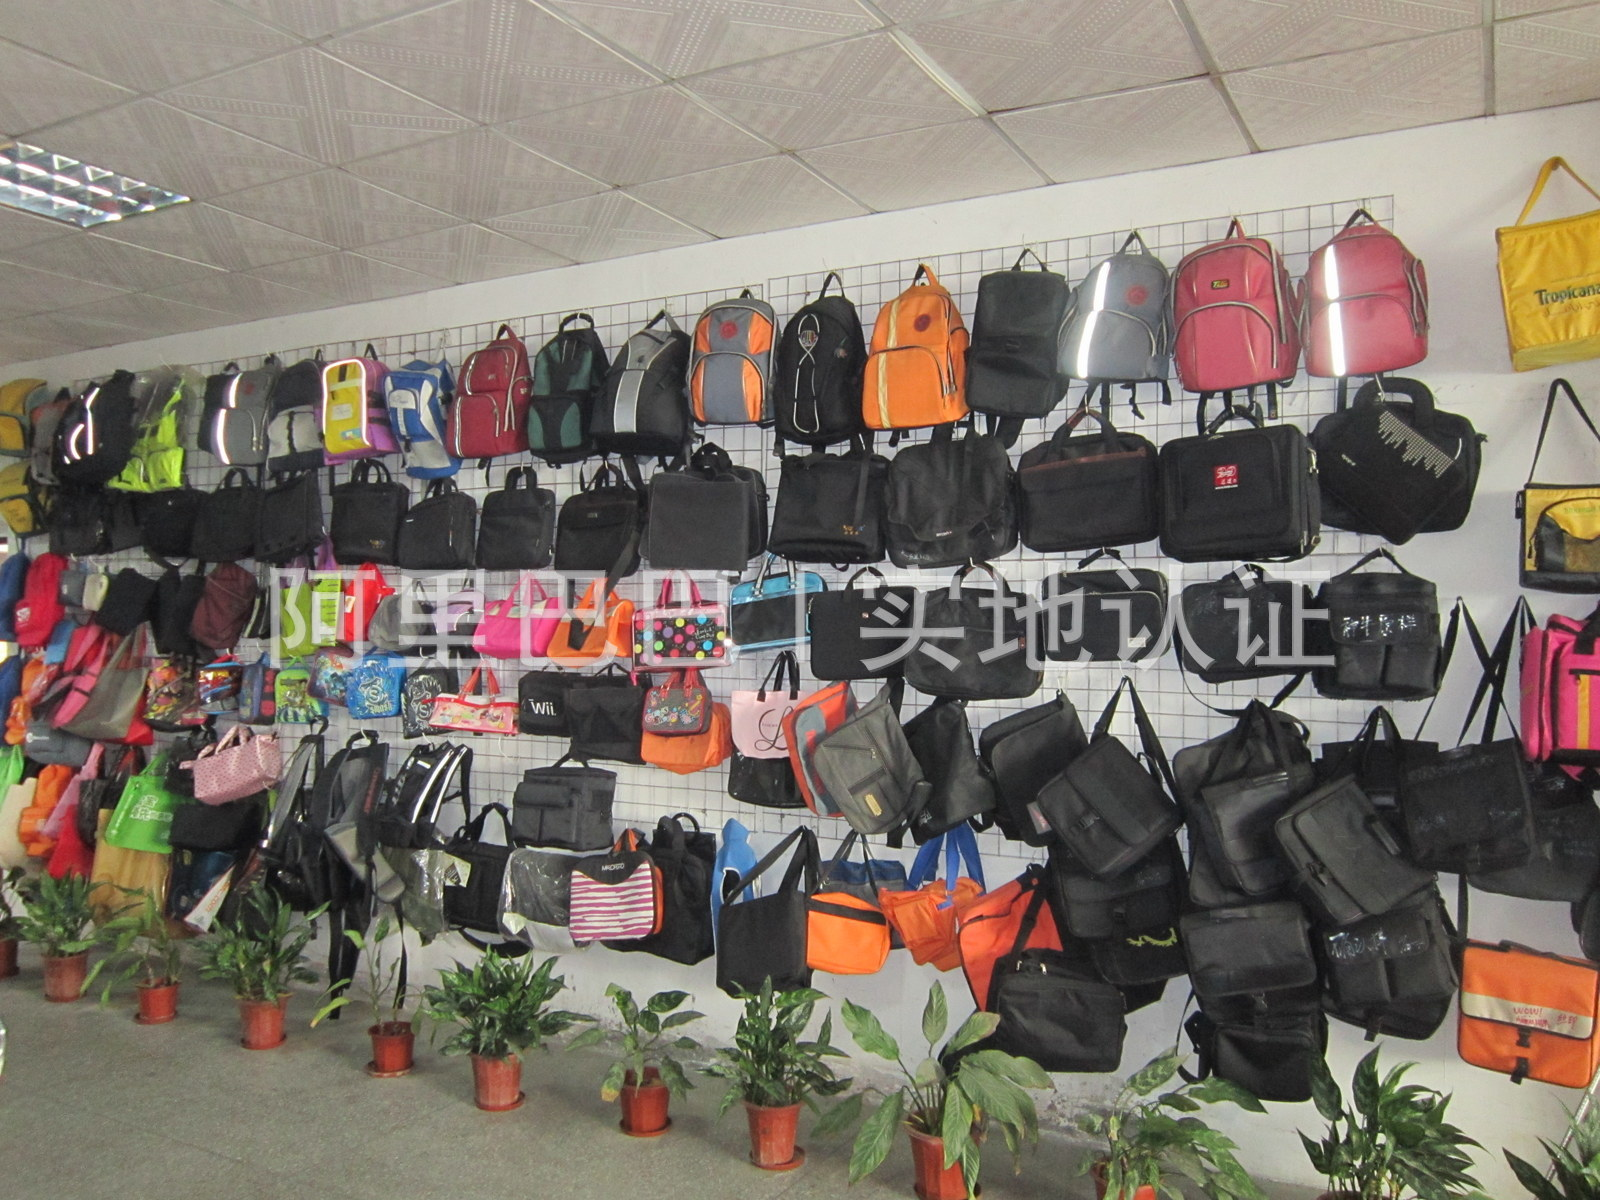 All kinds of bags products